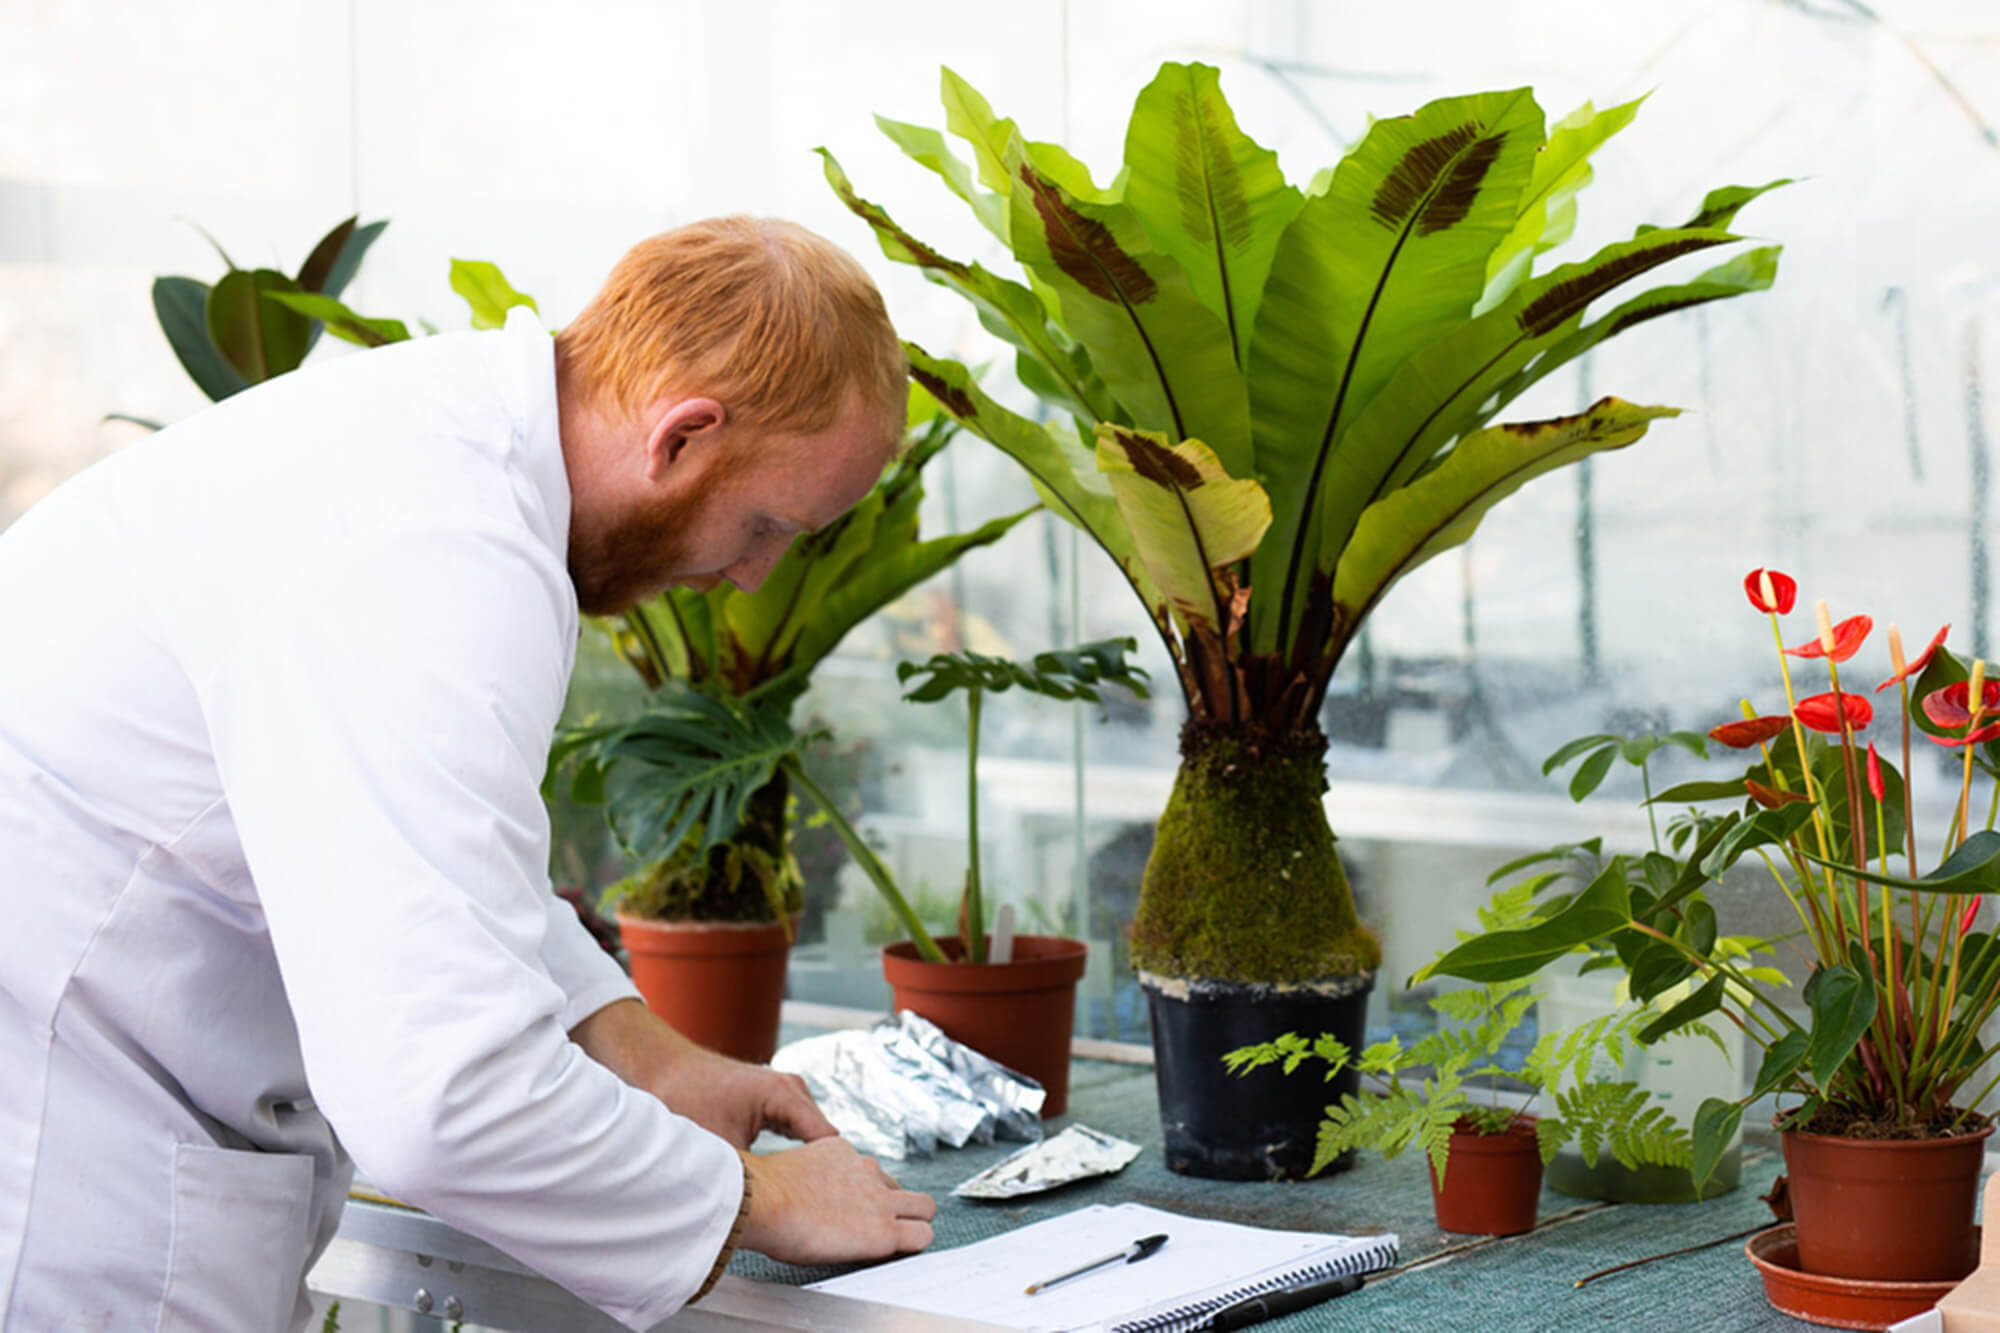 A male student in the glasshouse analysing plants